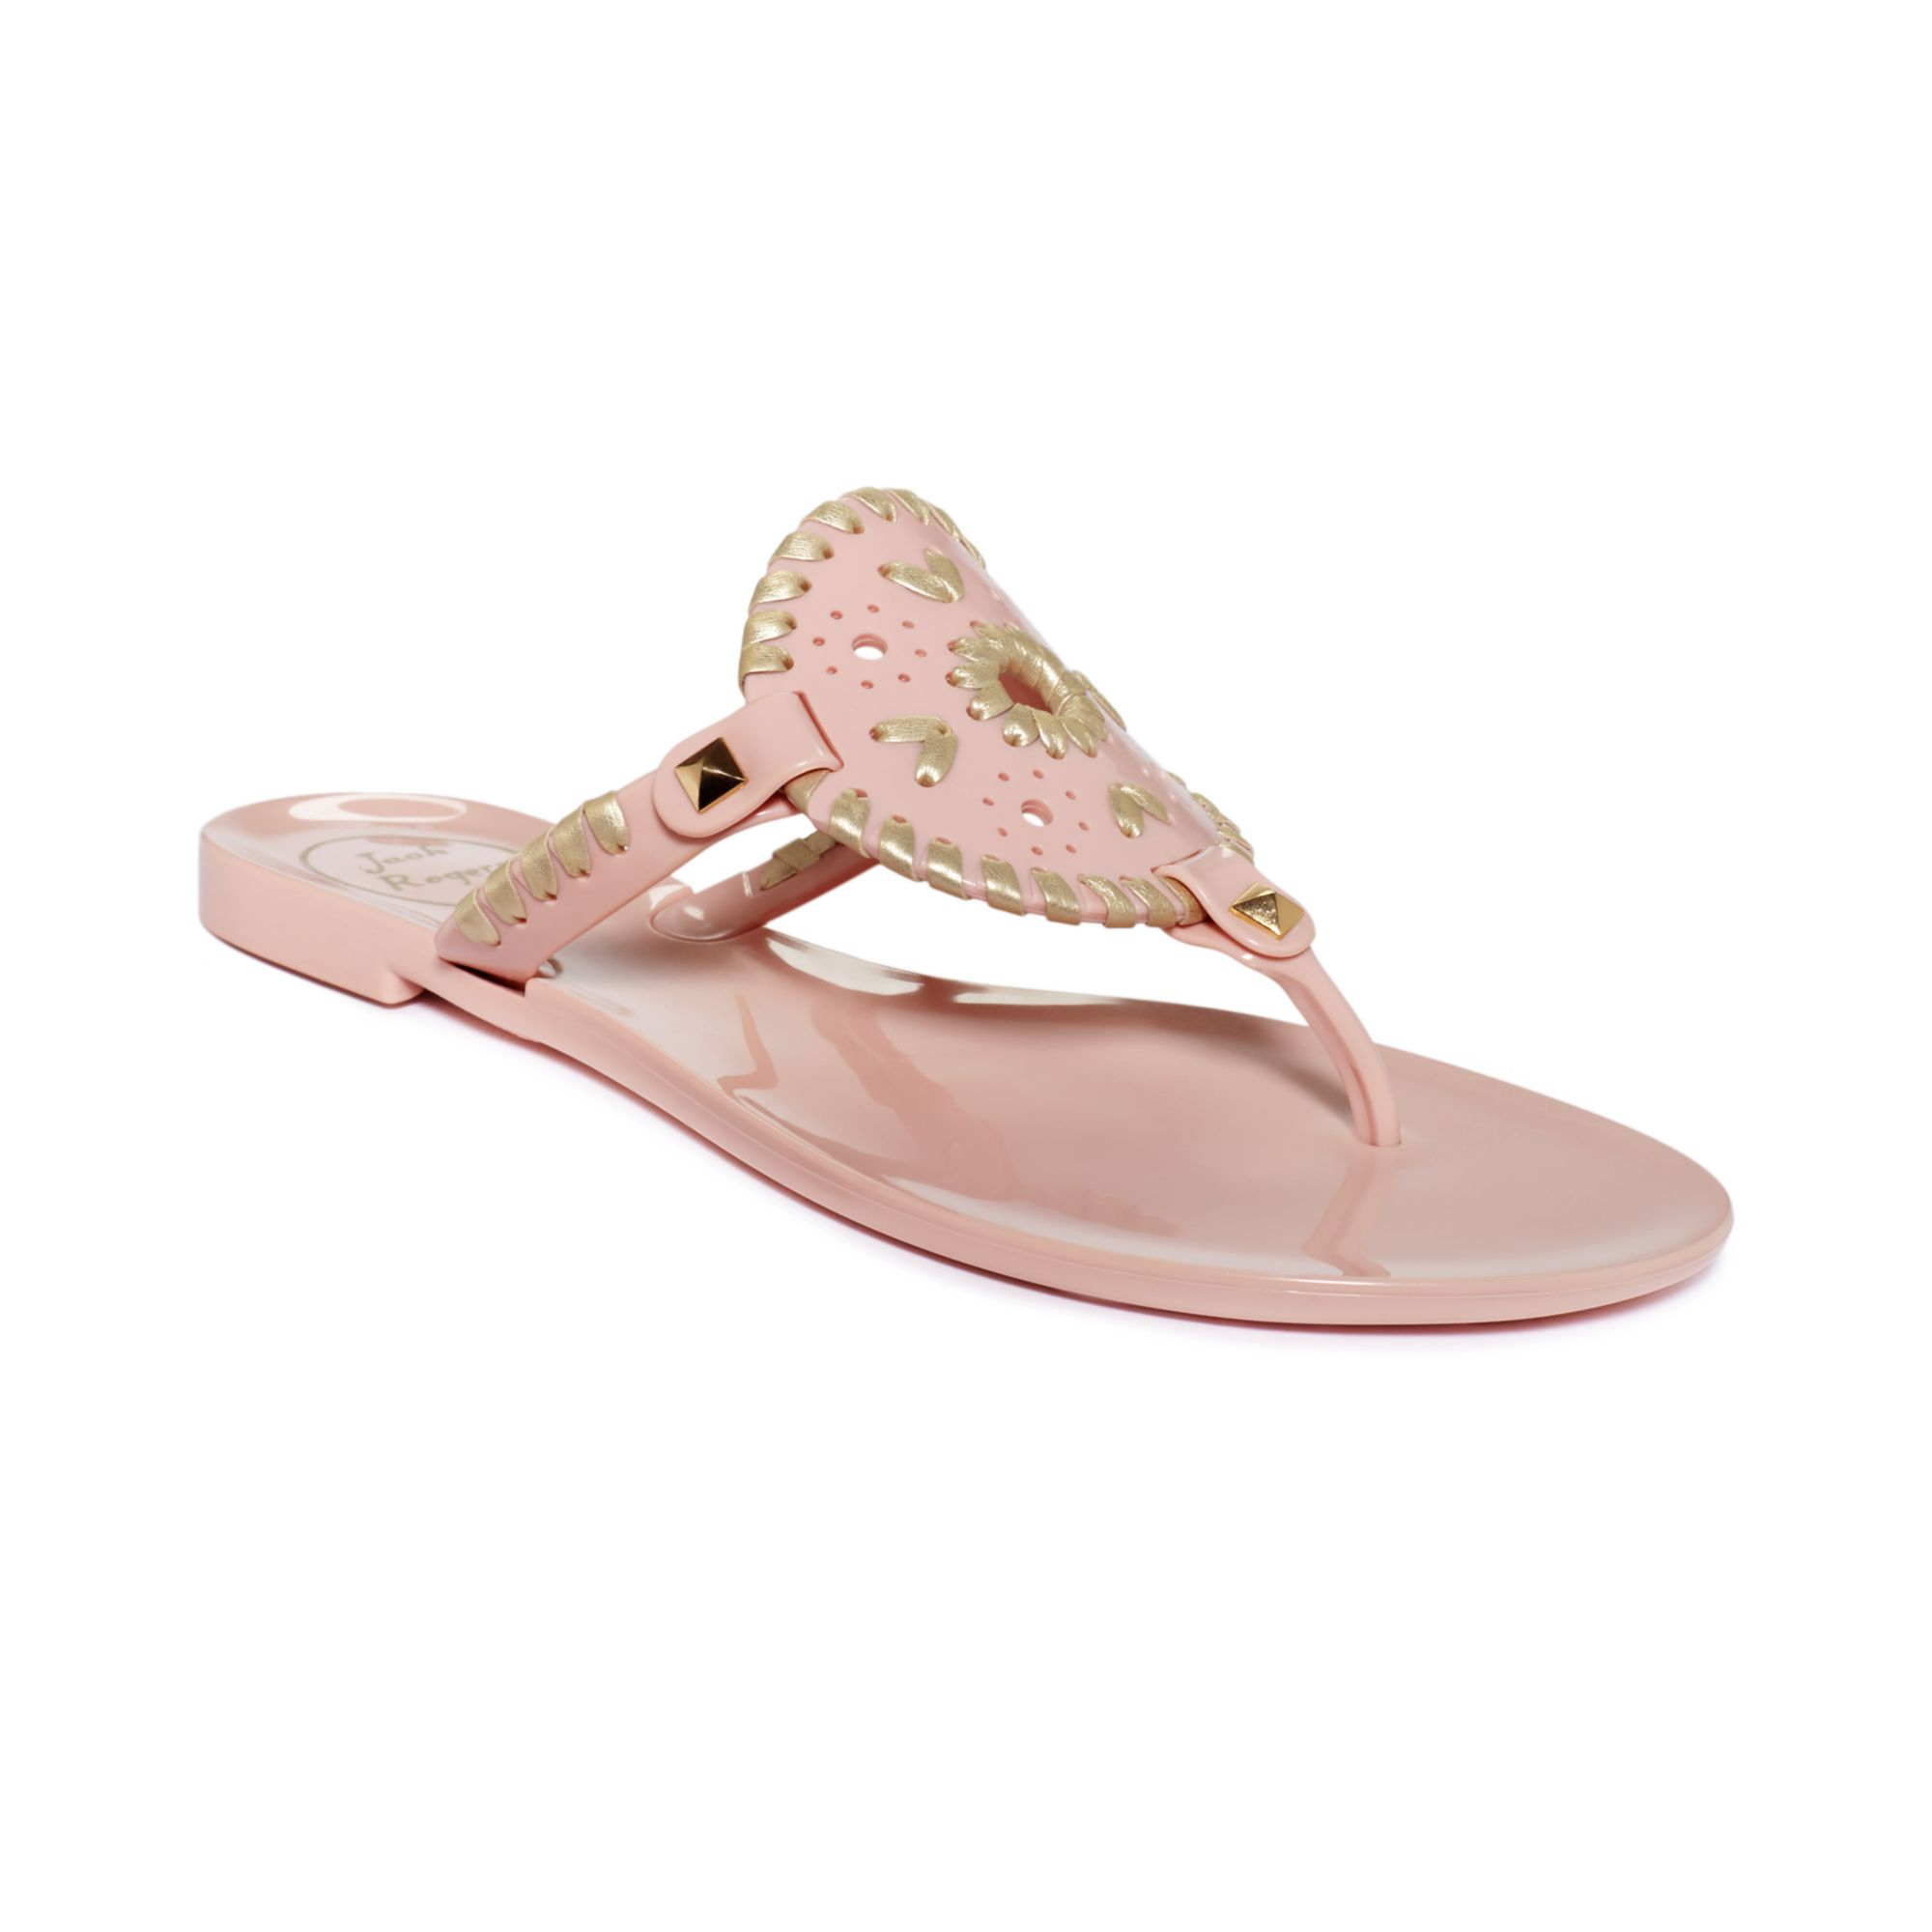 d751e4e7914 Lyst - Jack Rogers Georgica Thong Jelly Sandals in Pink